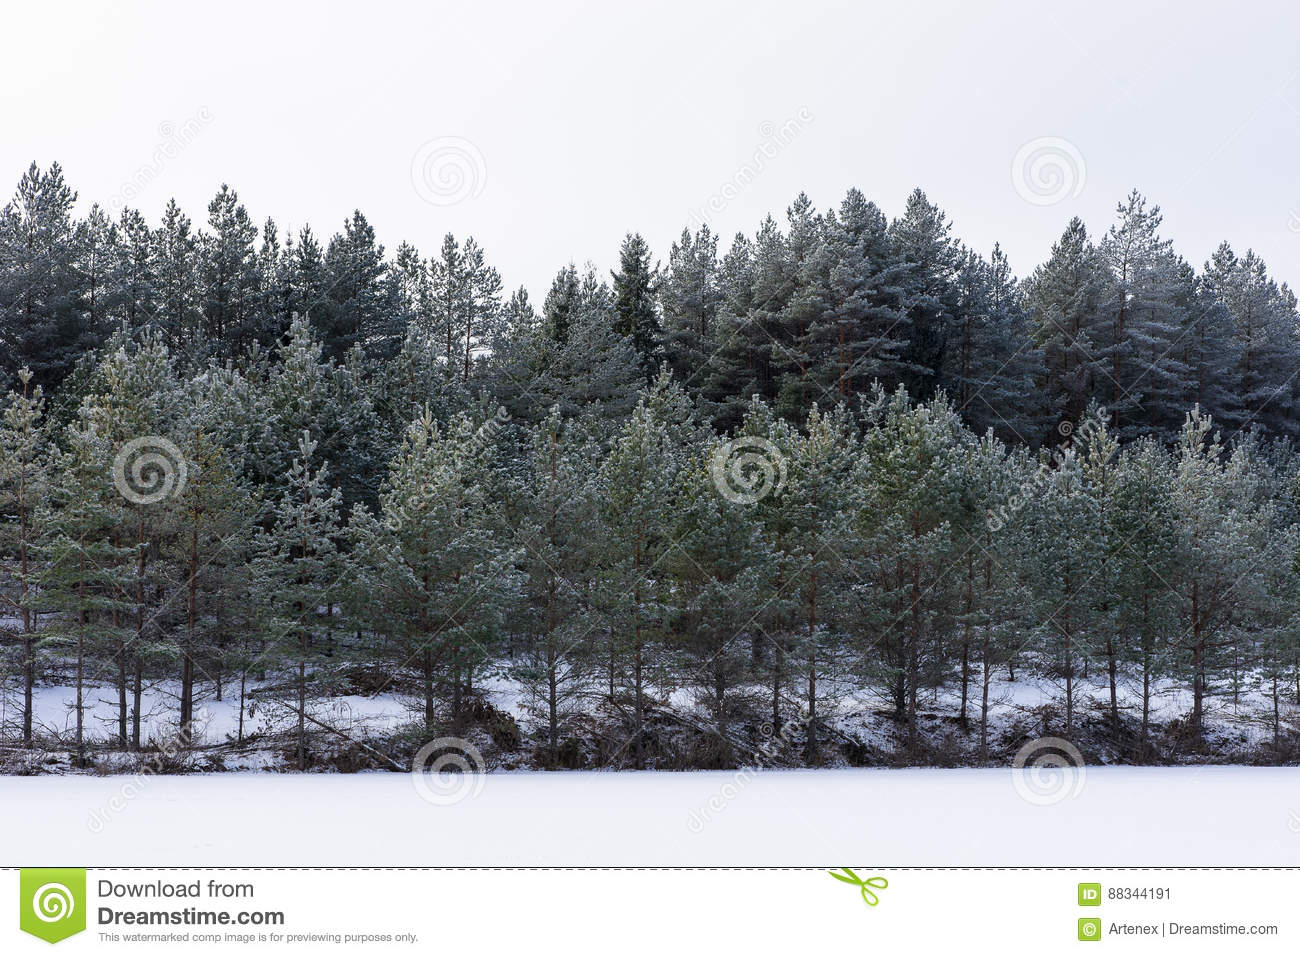 Winter in the lake. Icy cold forest. Frosty wood and ground. Freeze temperatures in nature. Snowy natural environment